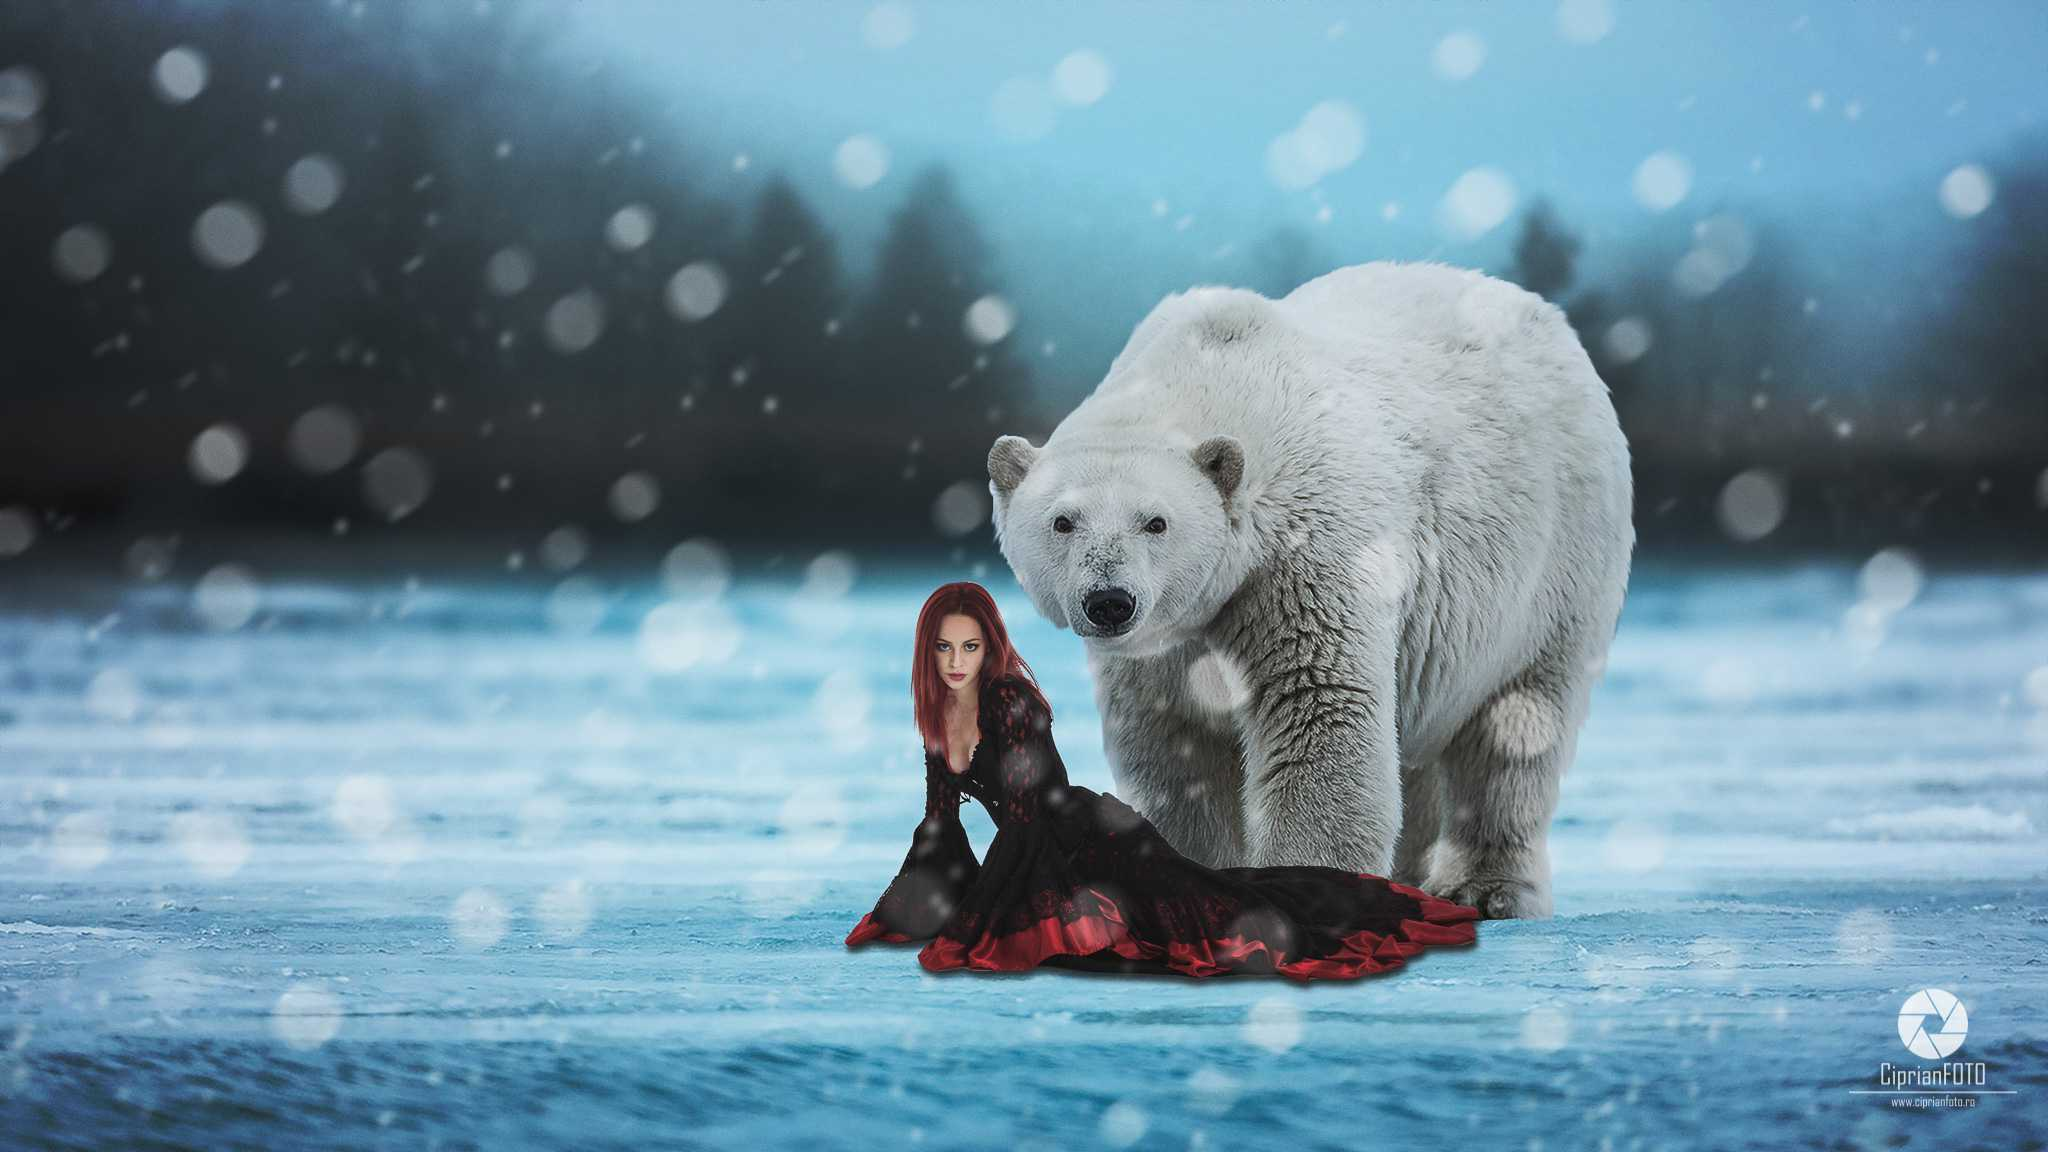 The Polar Bear And The Beautiful Woman, Photoshop Manipulation Tutorial, CiprianFOTO